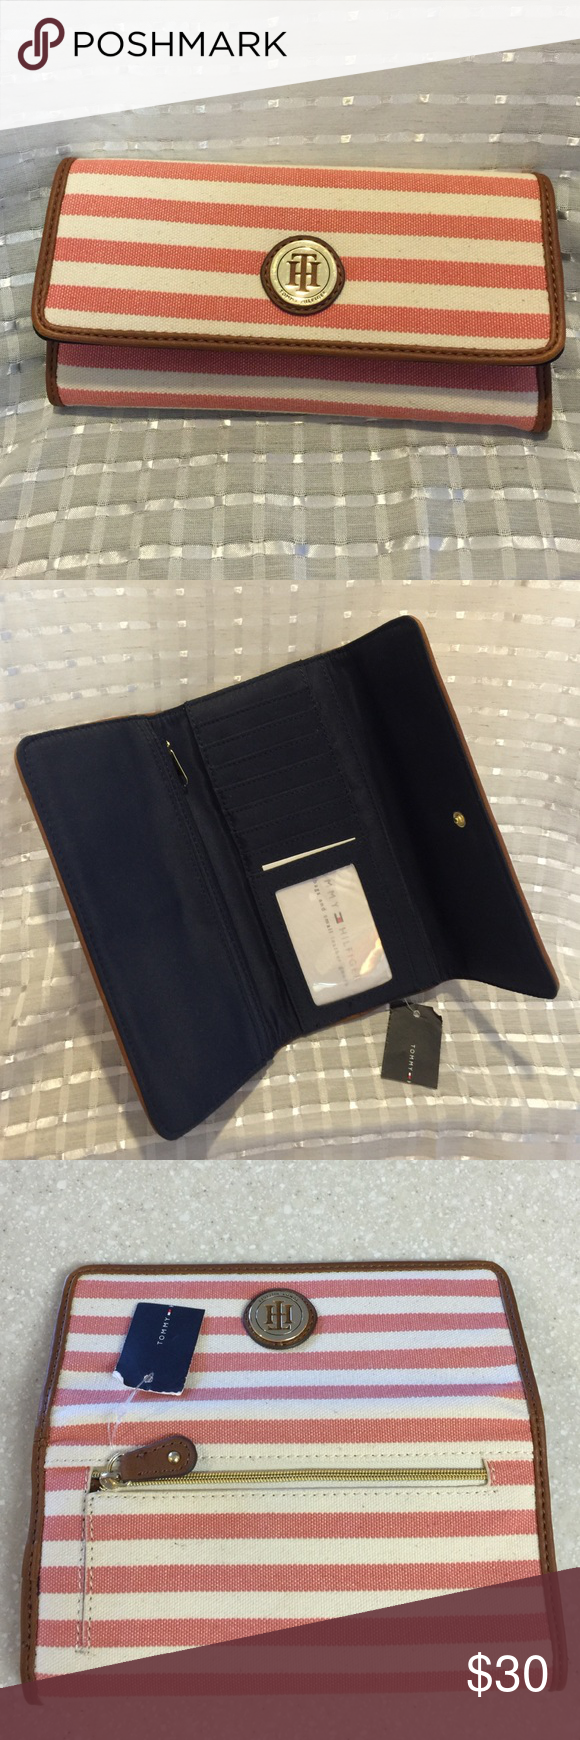 """Tommy Hilfiger coral/cream stripe tri fold wallet Super cute coral/cream canvas exterior & navy interior. Brown """"leather"""" trim adds richness to this hold all my stuff wallet! Tommy Hilfiger Accessories"""